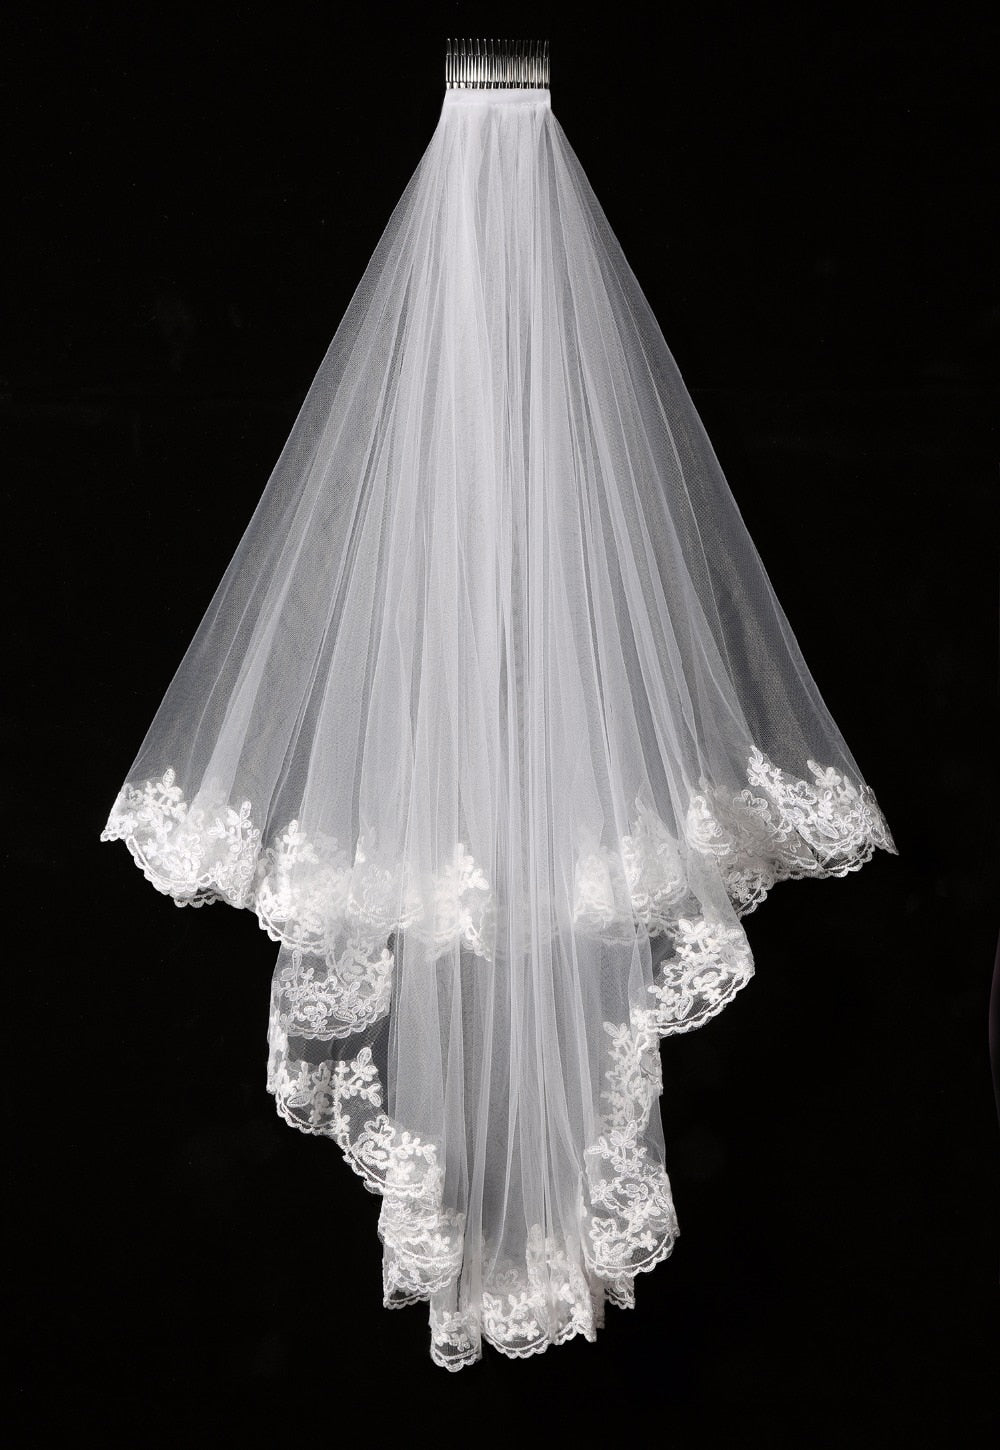 Short 2 layer Veil with a beautiful Decorative Edging.Available in White or Ivory - weddingniknaks